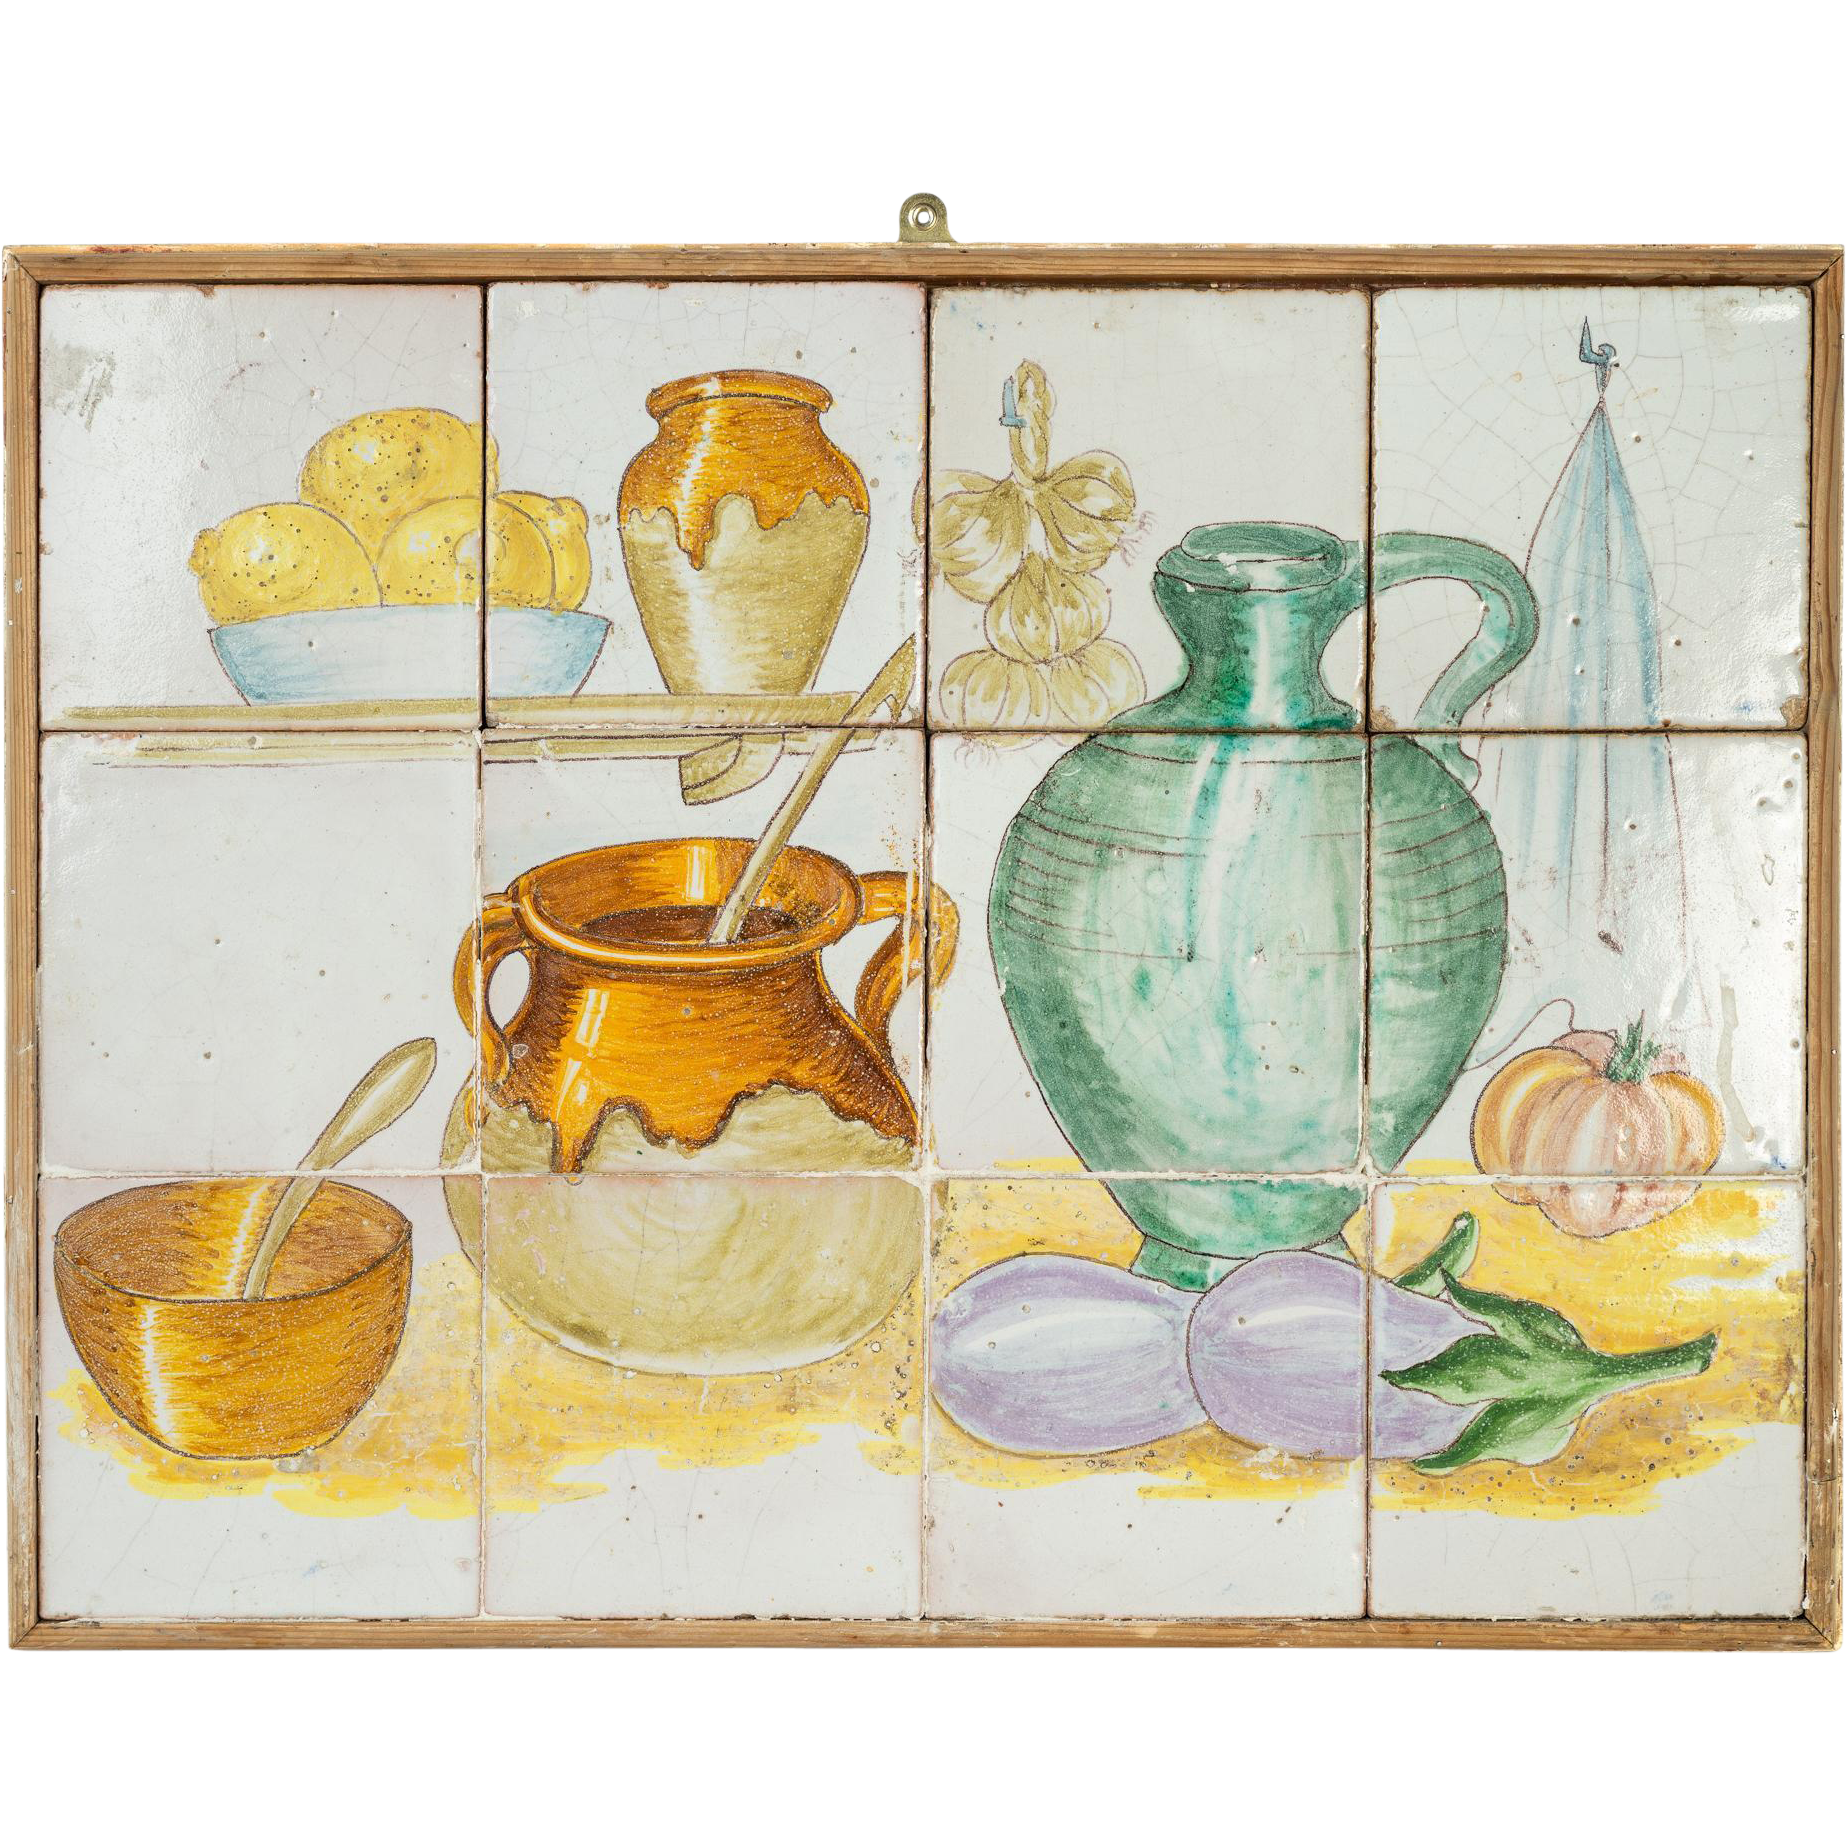 Vintage Tiled French Kitchen Scene From Relic On Ruby Lane